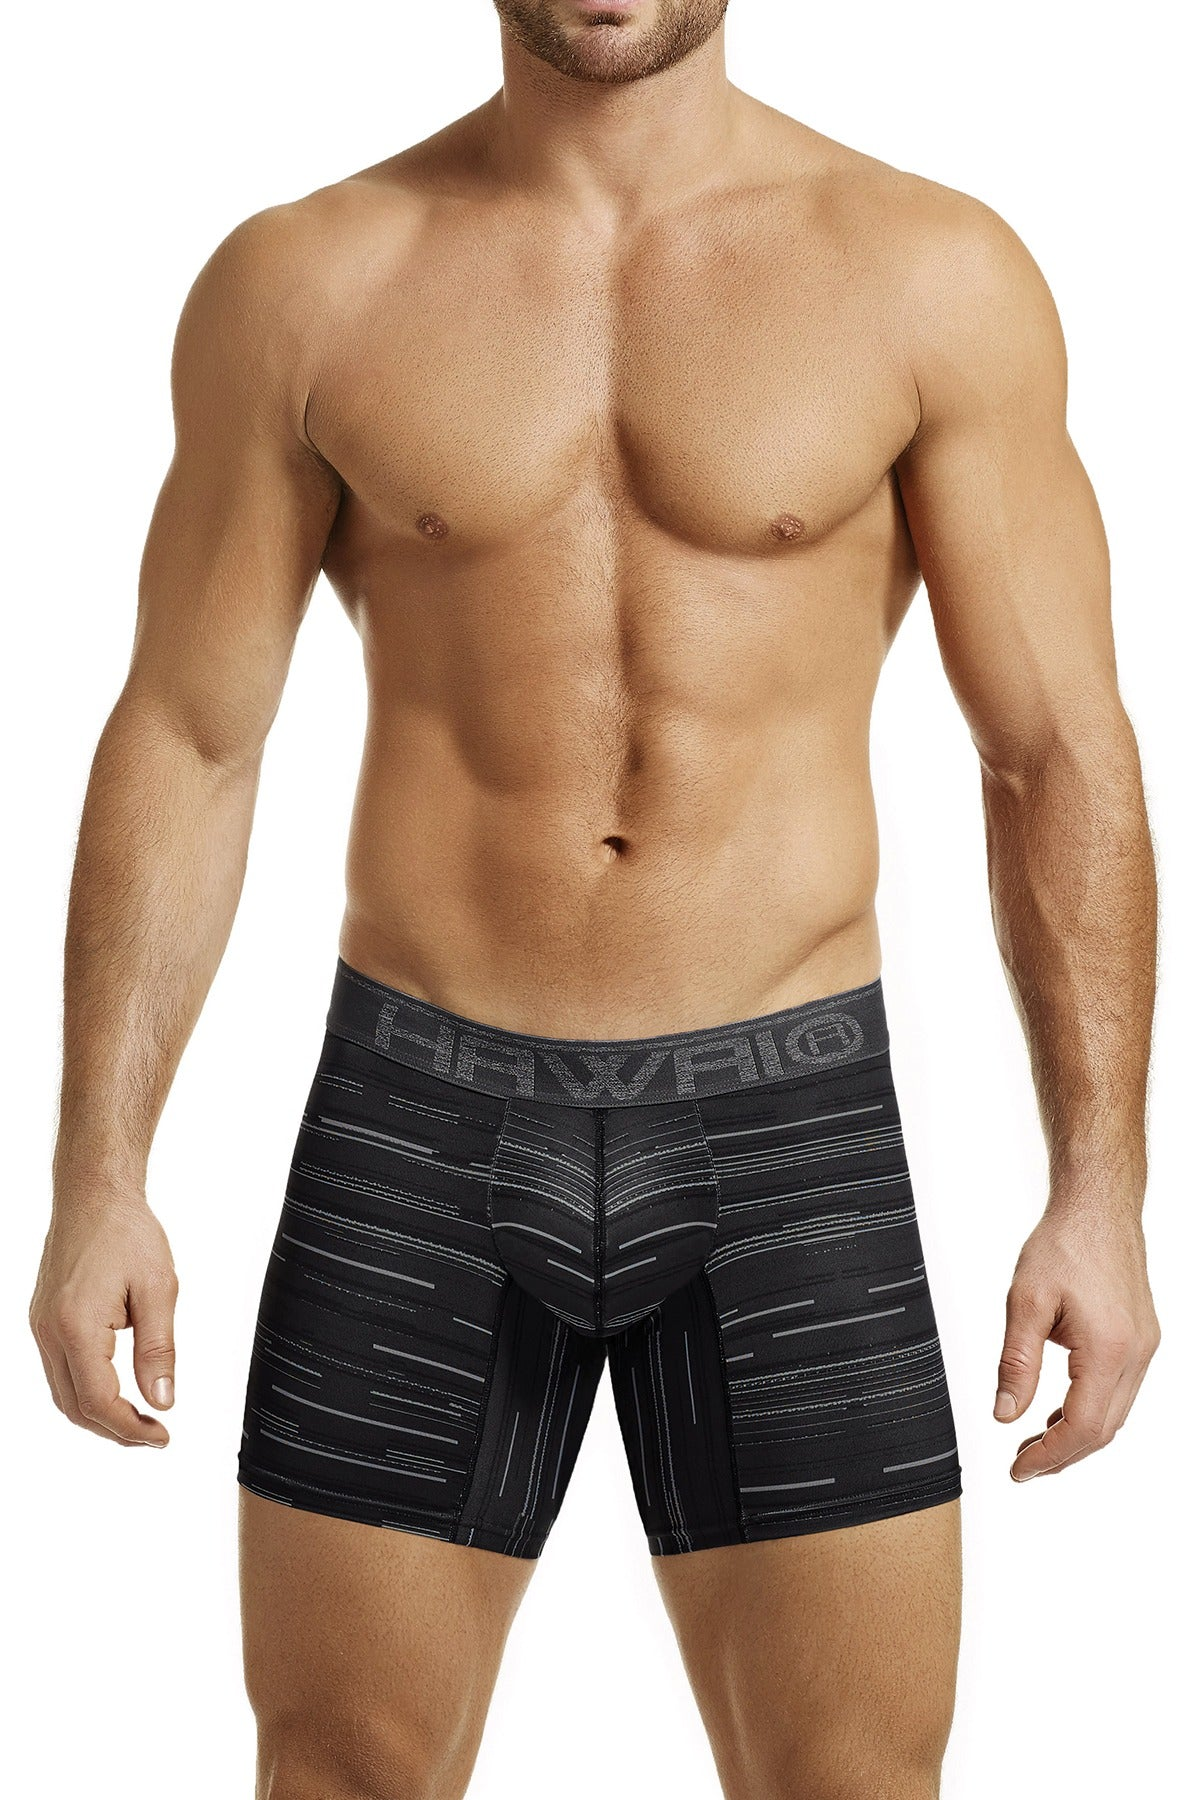 Hawai Black Psyche-Digital Printed Boxer Brief